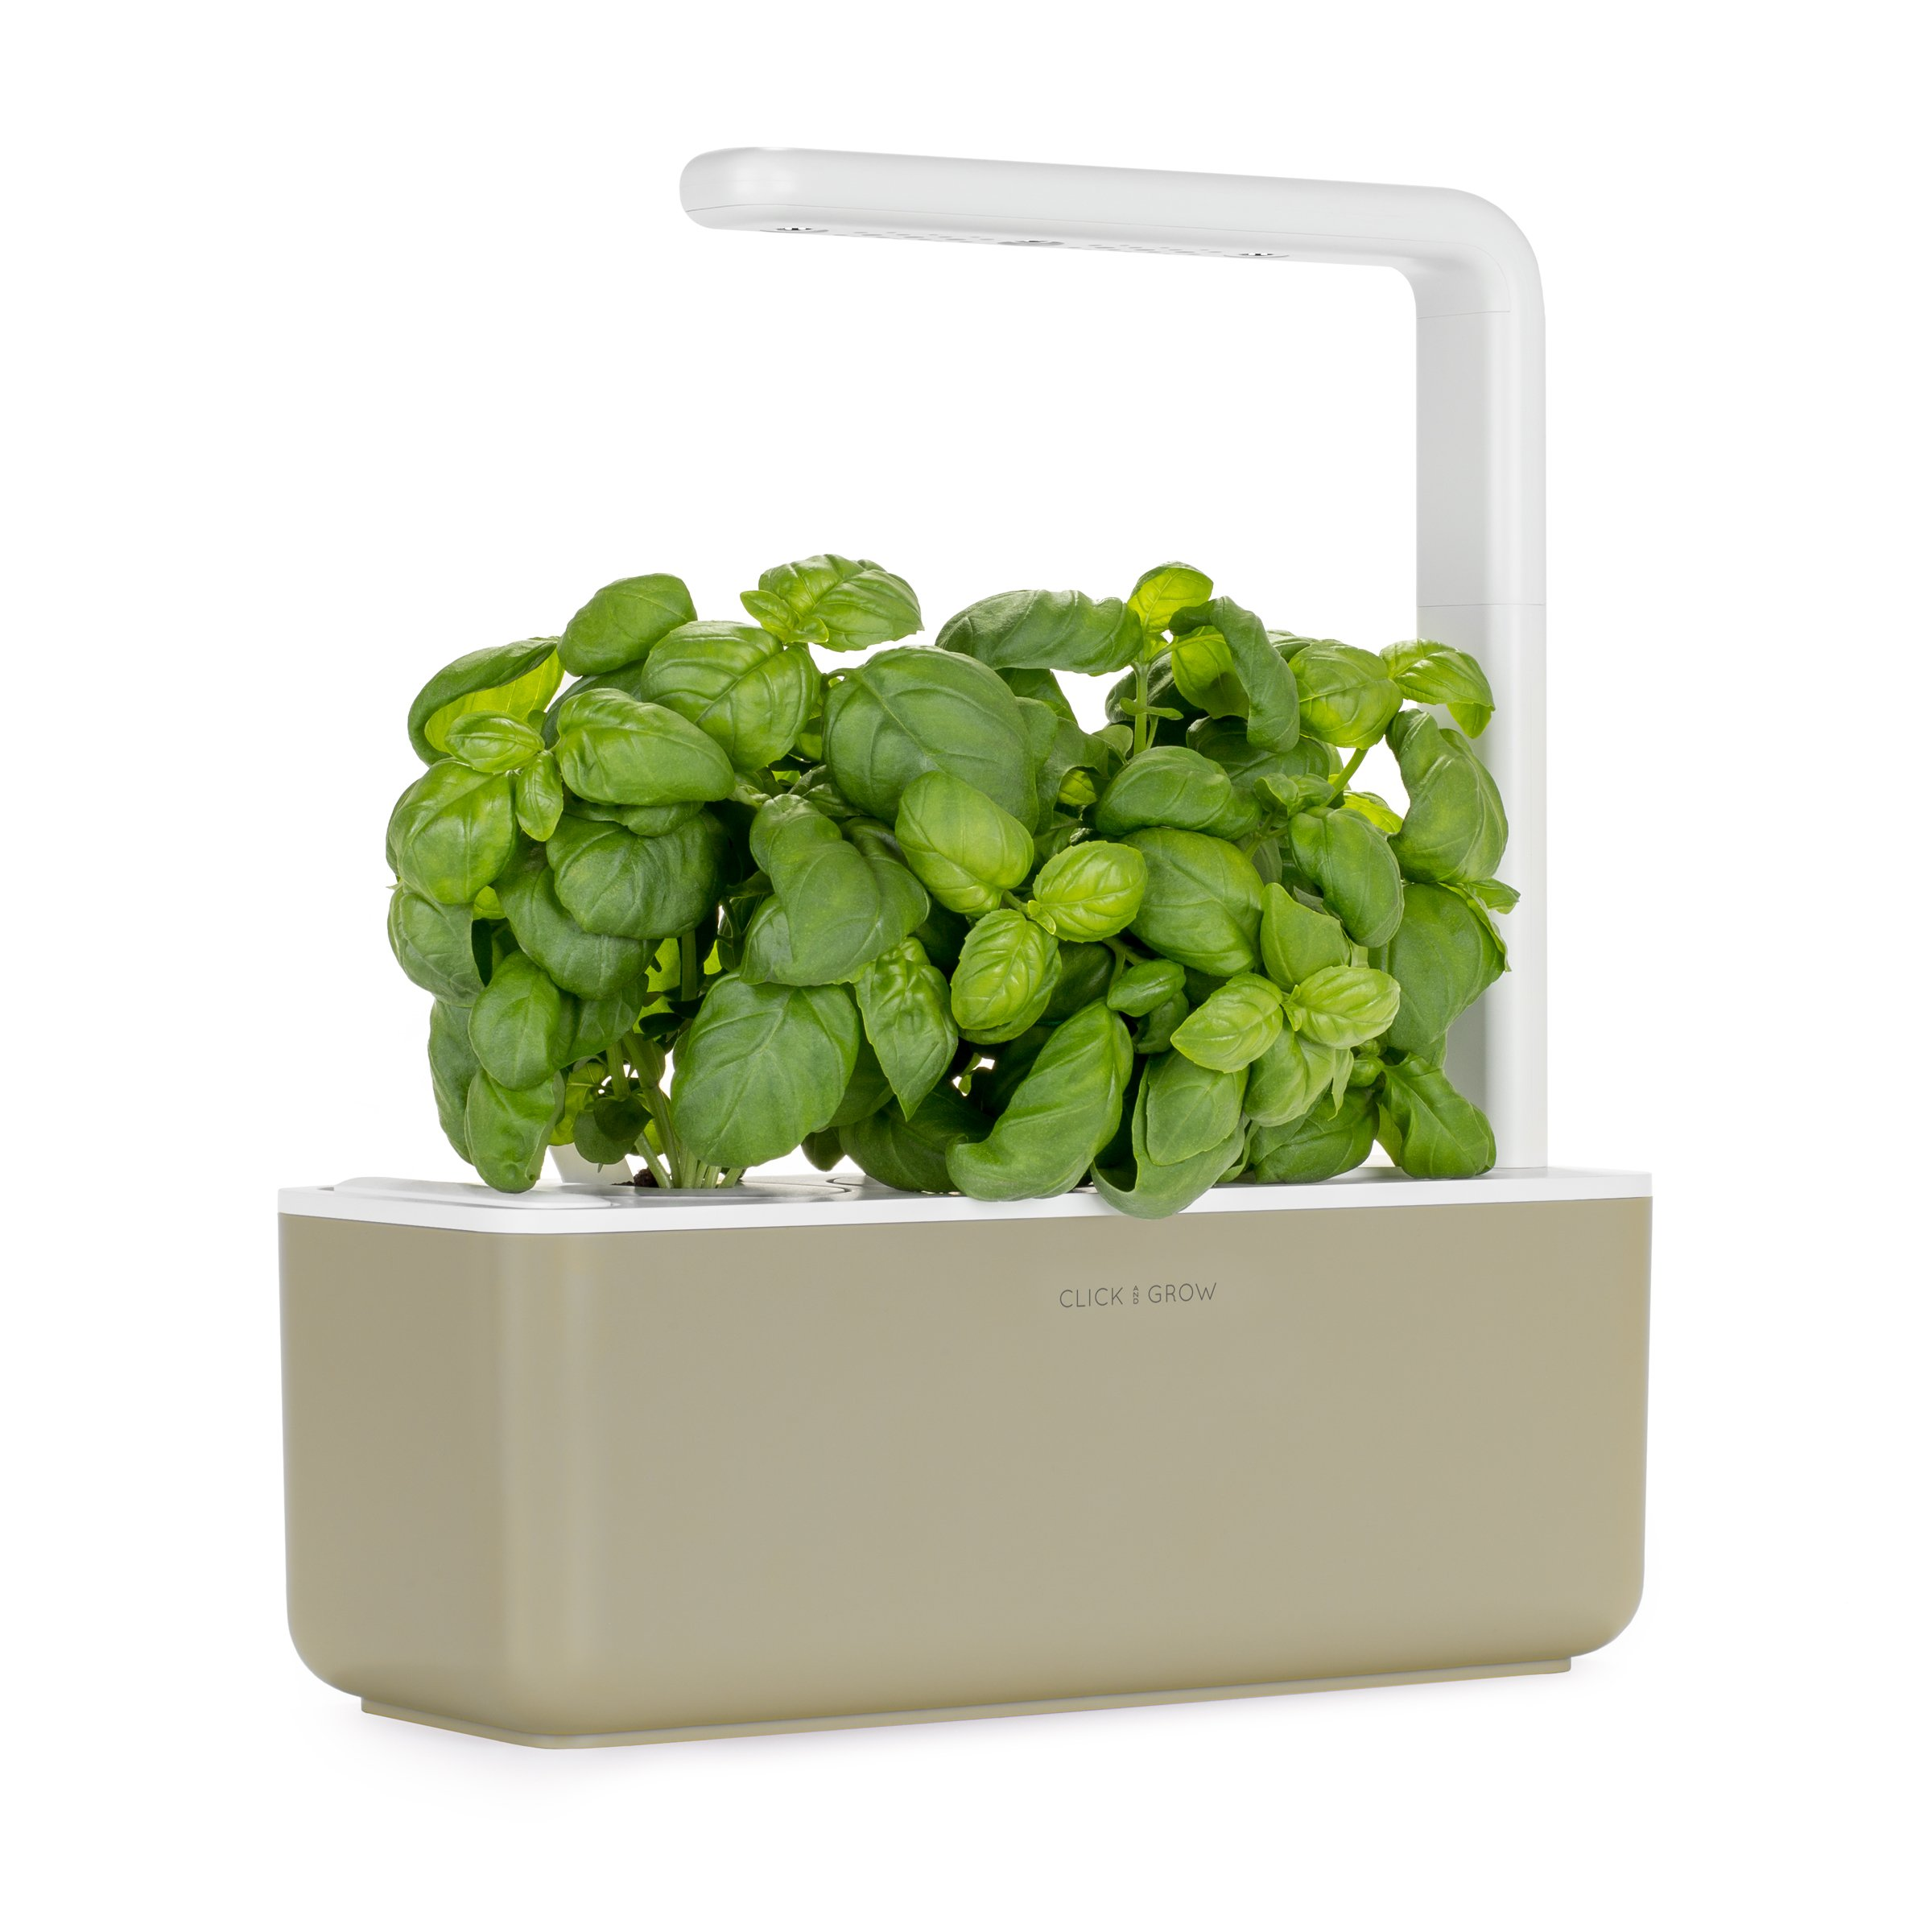 Click and Grow Smart Garden 3 Indoor Gardening Kit (Includes Basil Capsules), Beige by Click & Grow